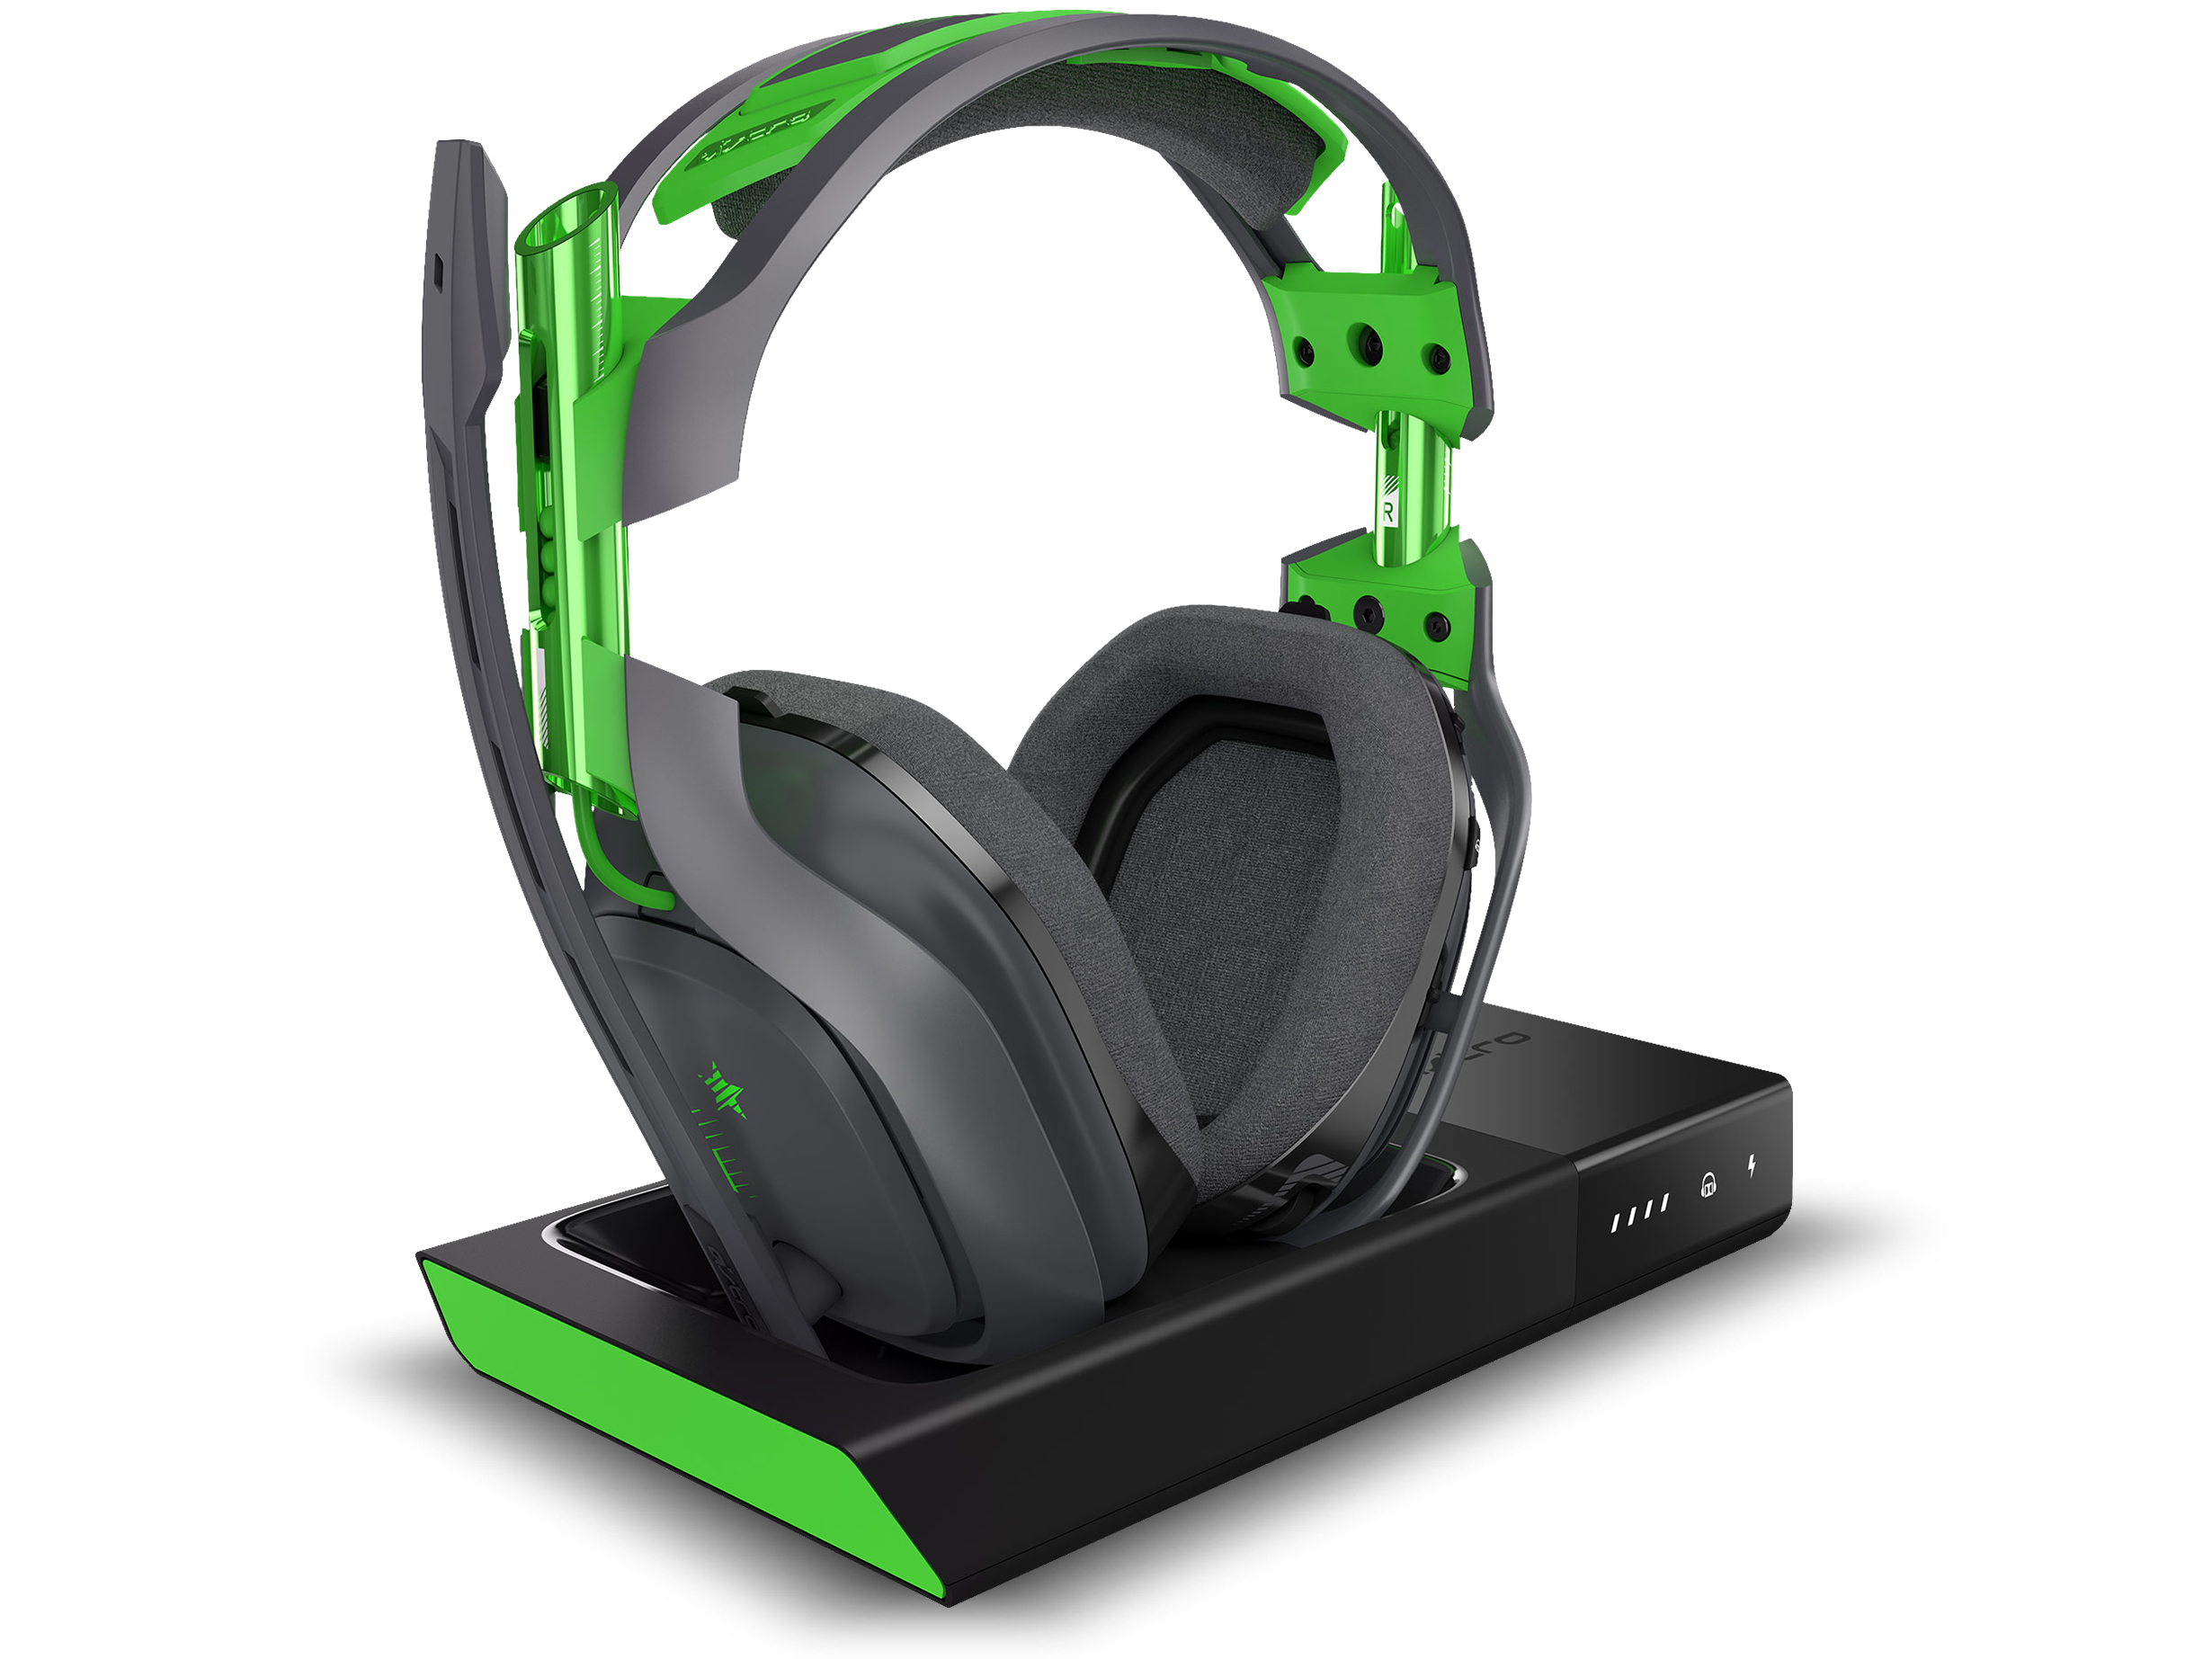 A50 Wireless Headset and Base Station.